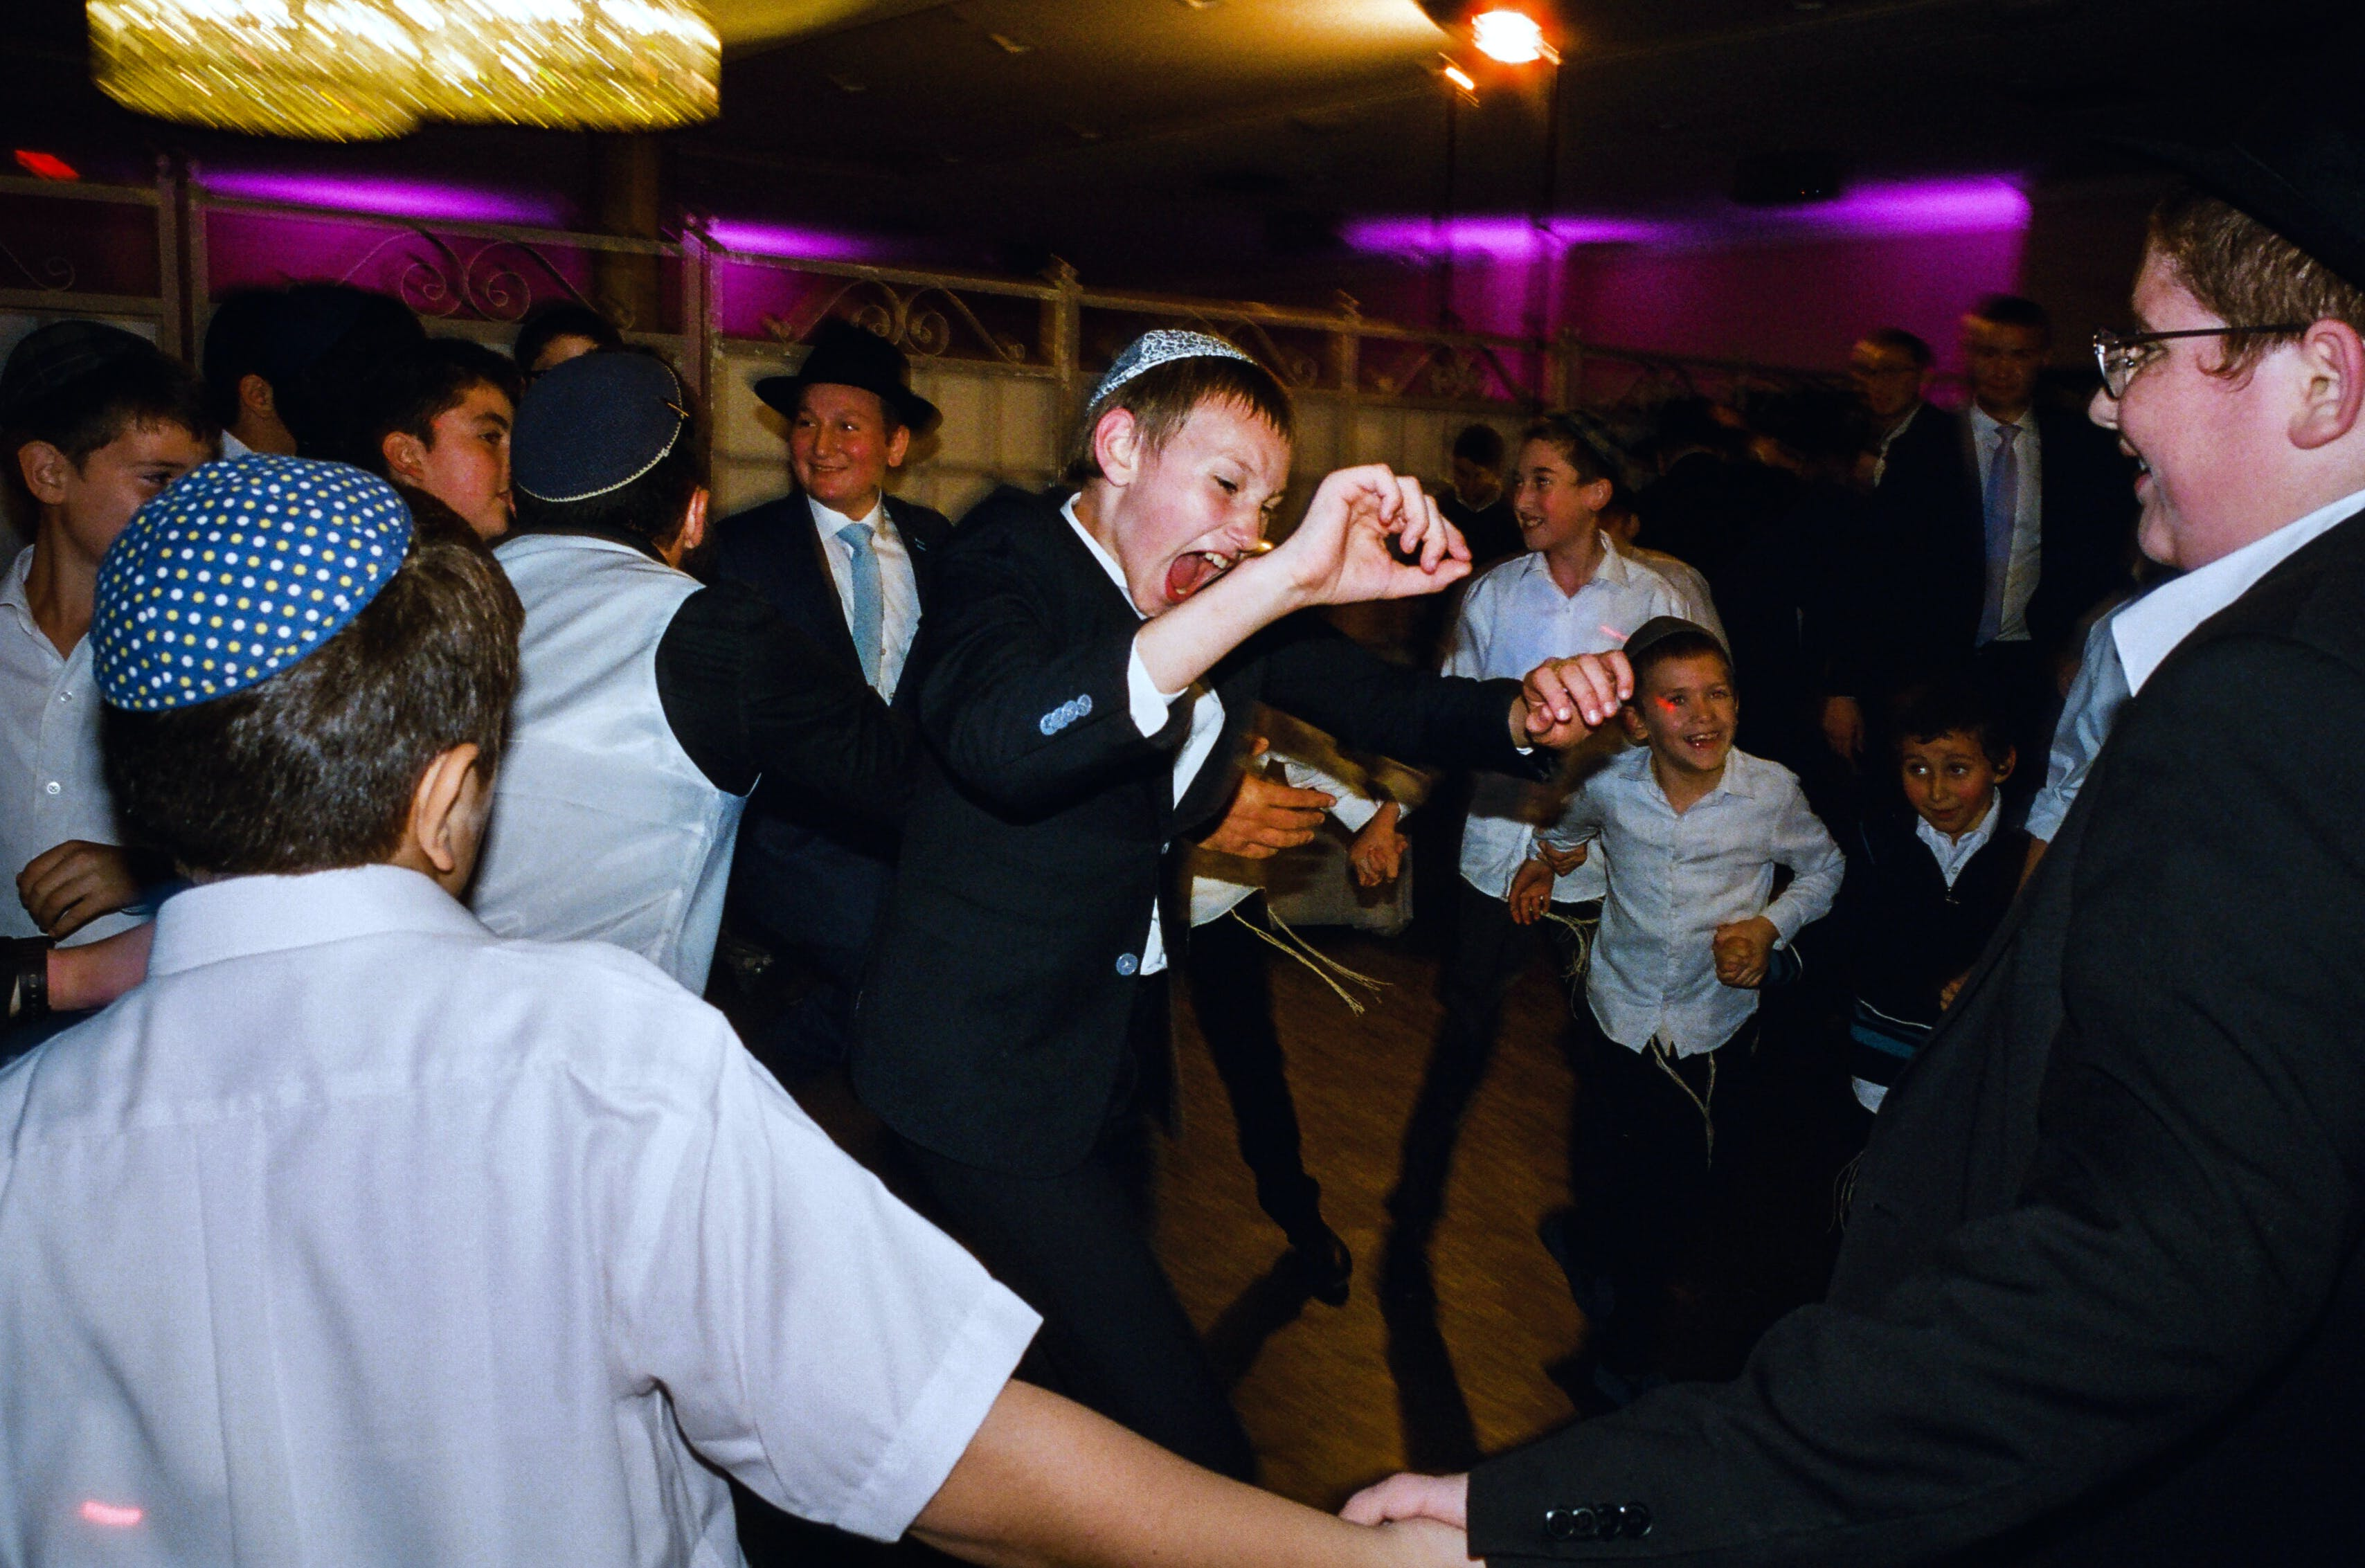 The bar mitzvah boy's brother rivals Meir Kay with his unstoppable energy.